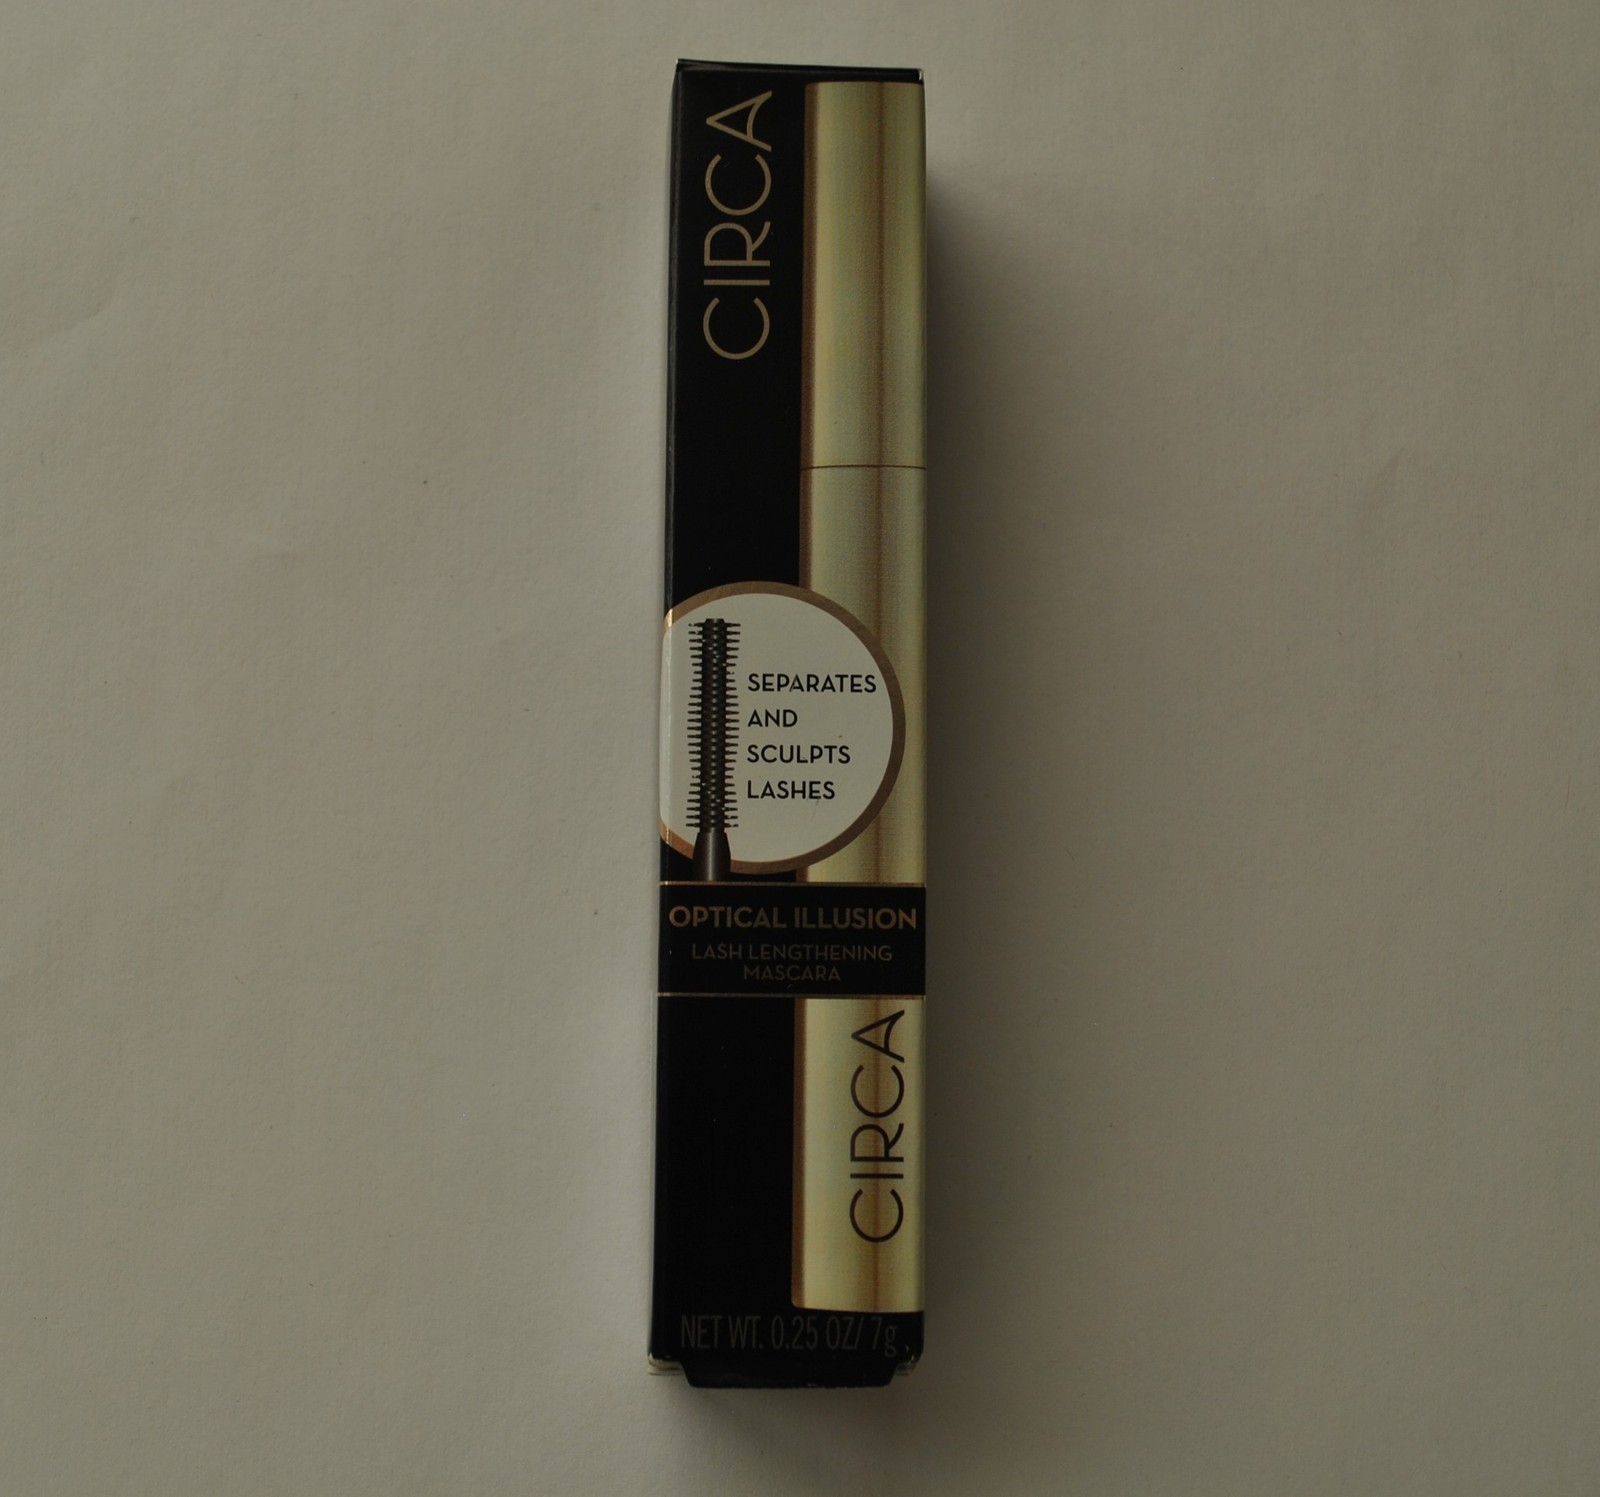 Primary image for CIRCA Optical Illusion Lash Lengthening Mascara - 03 Black Brown 0.25 oz